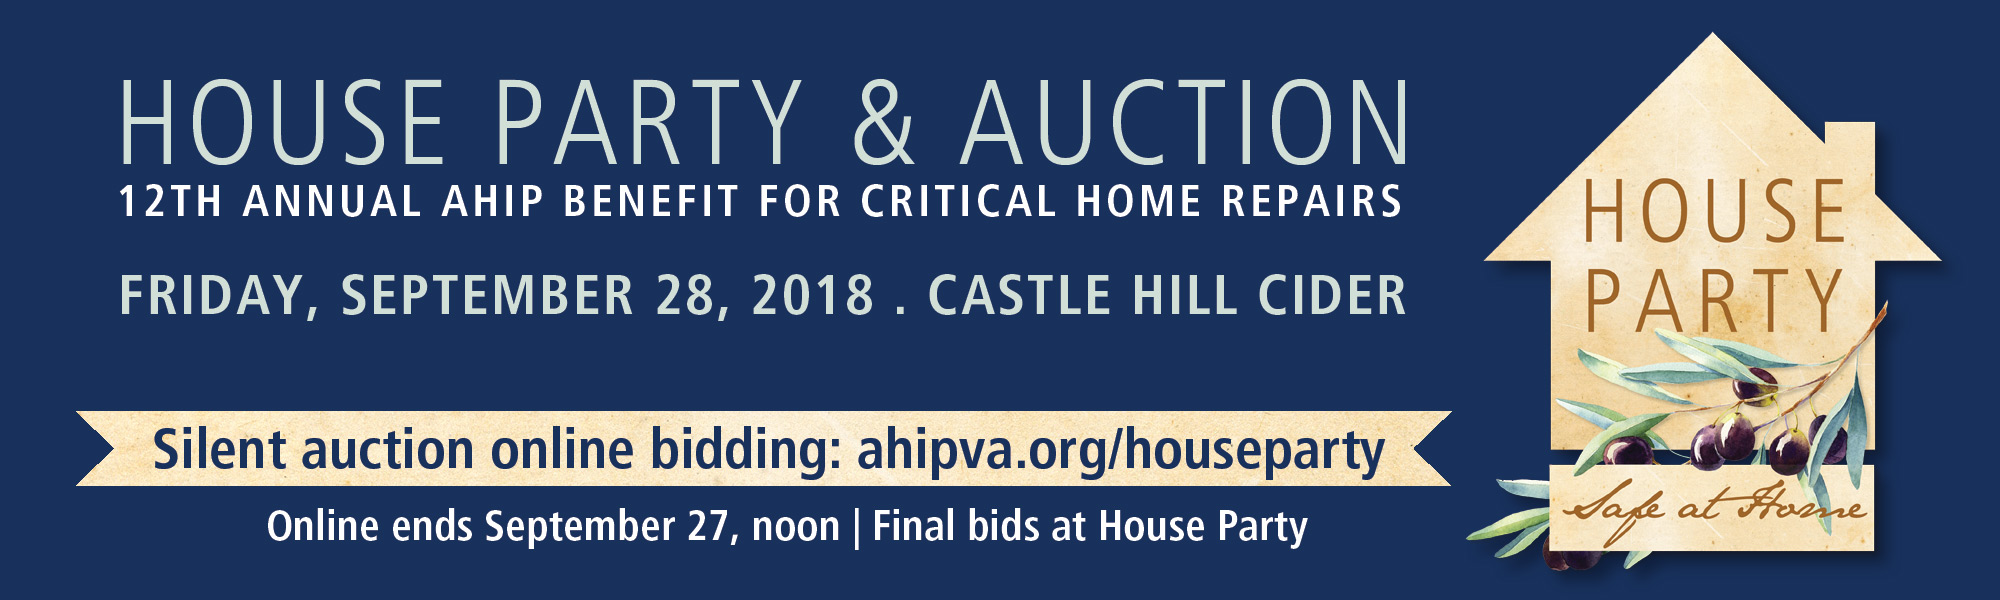 AHIP House Party Auction